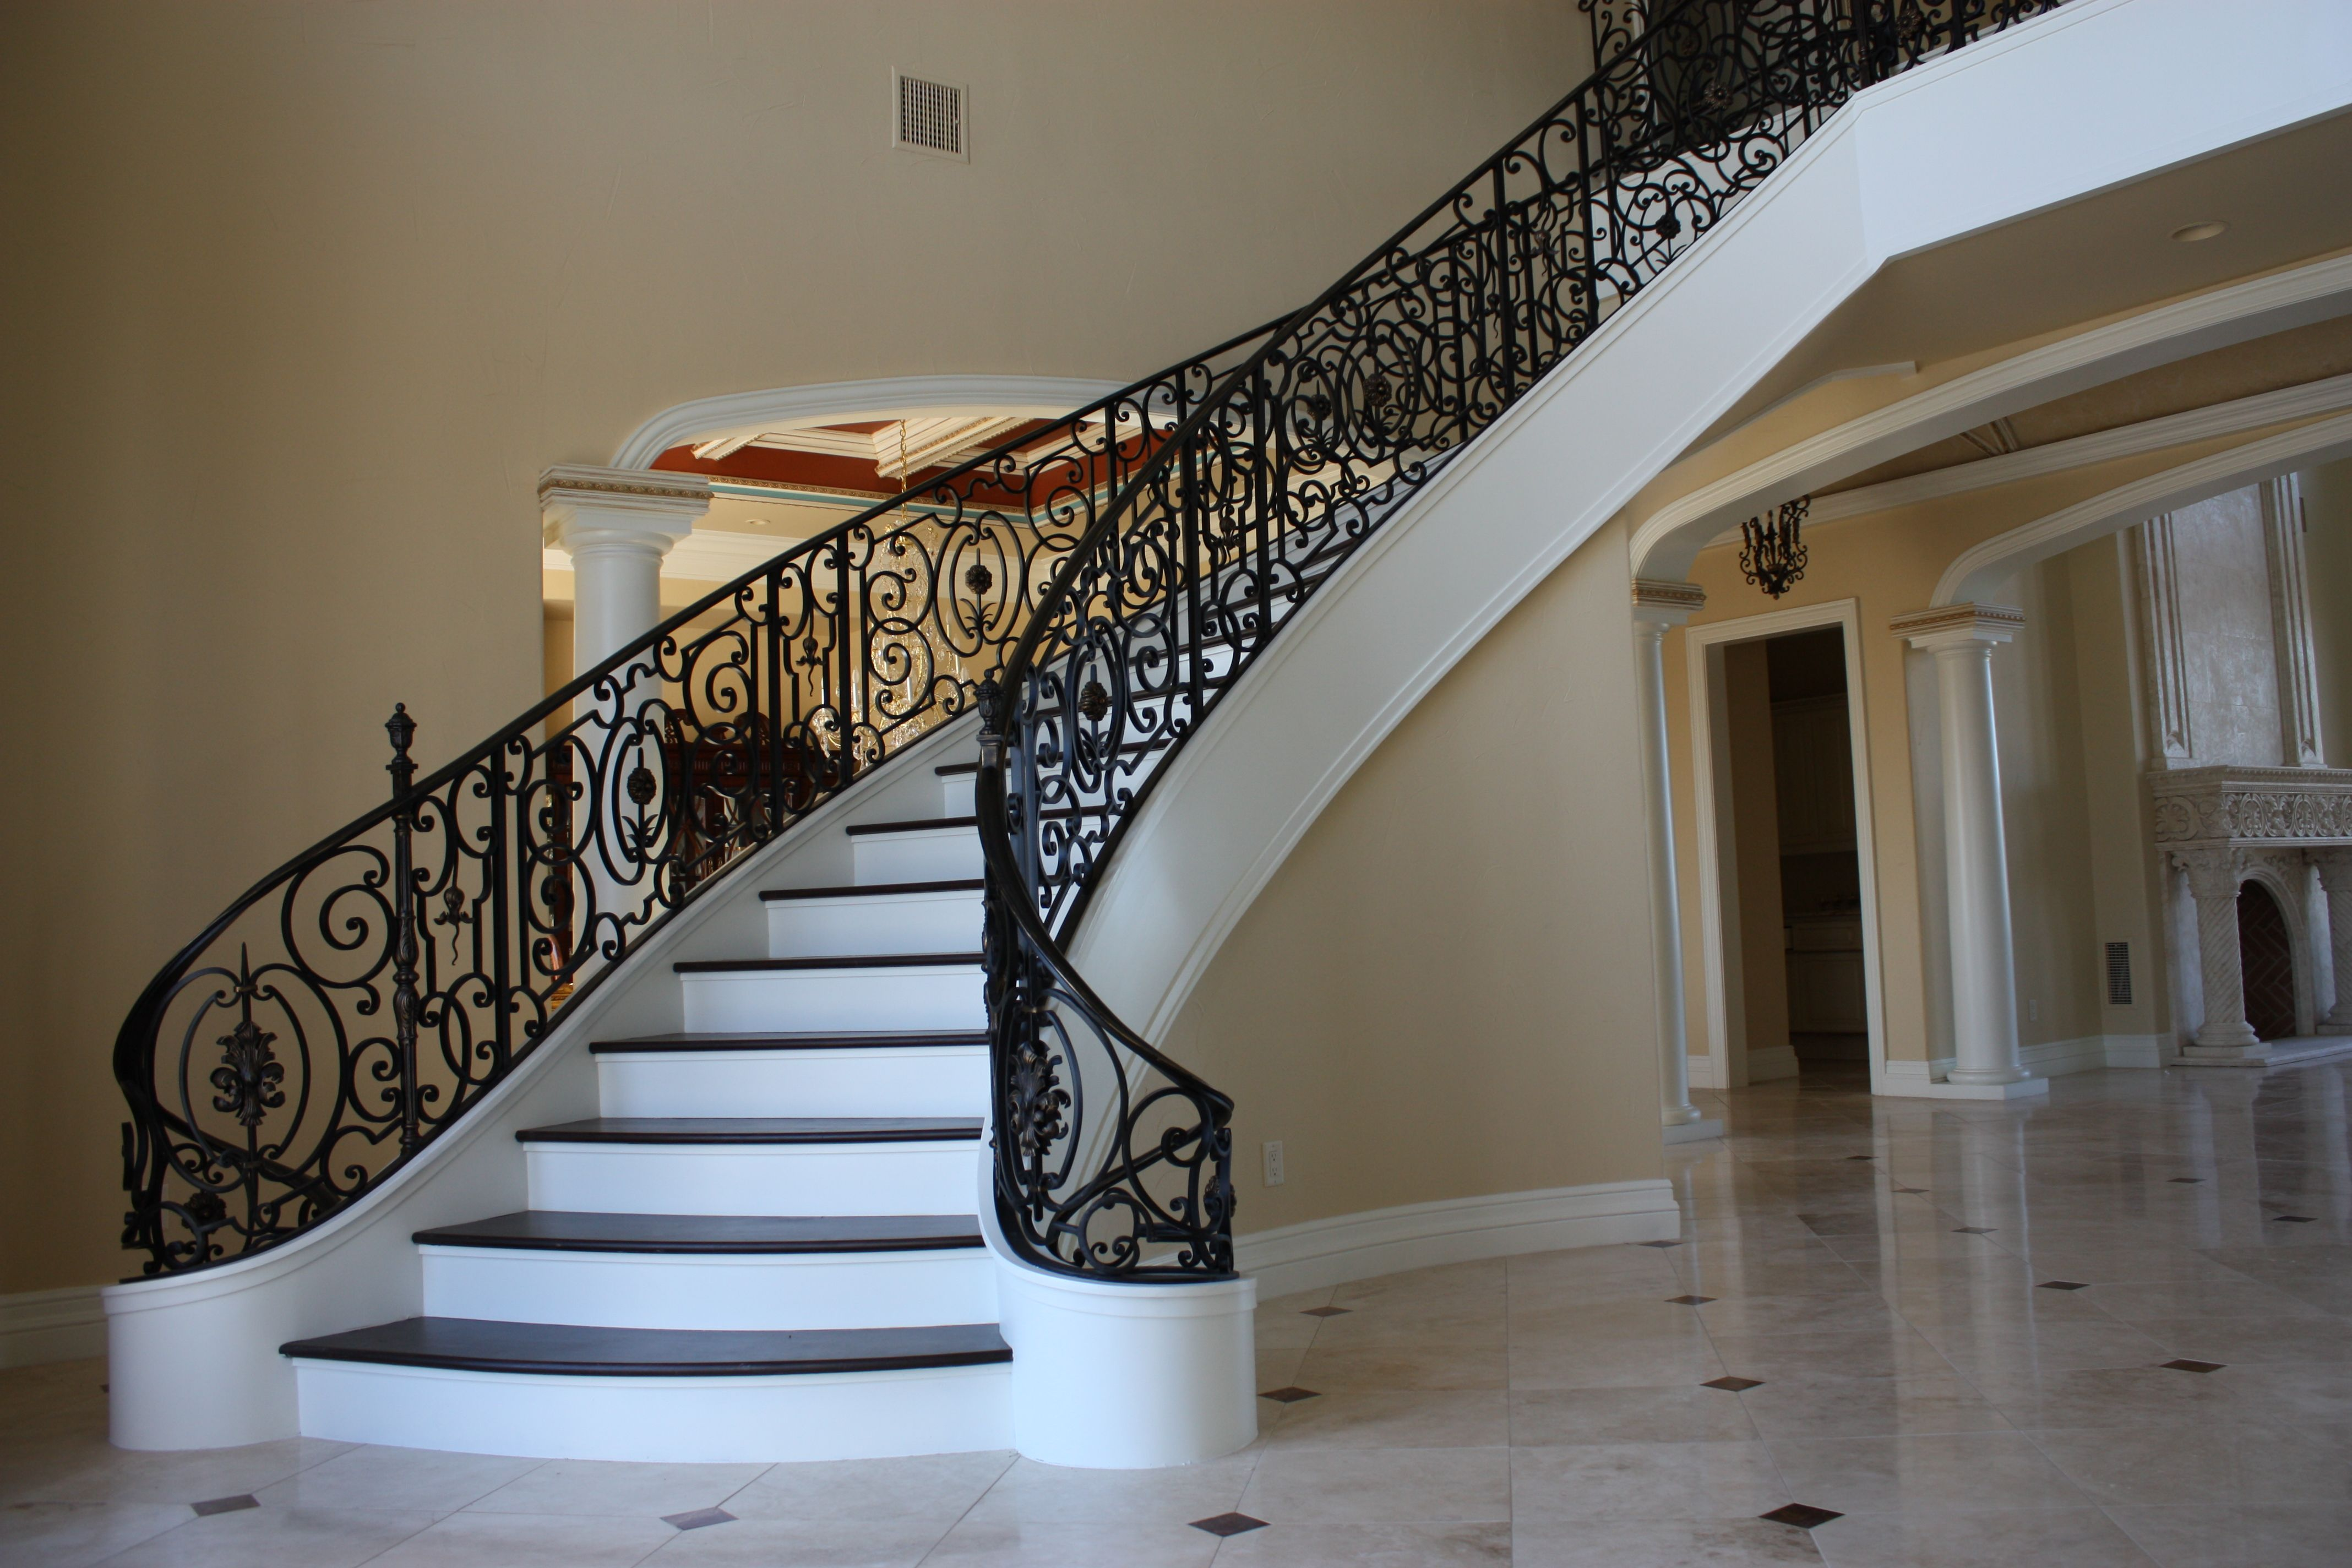 Wrought iron railing inside house - Beautiful Floating Curved Staircase With Iron Railing